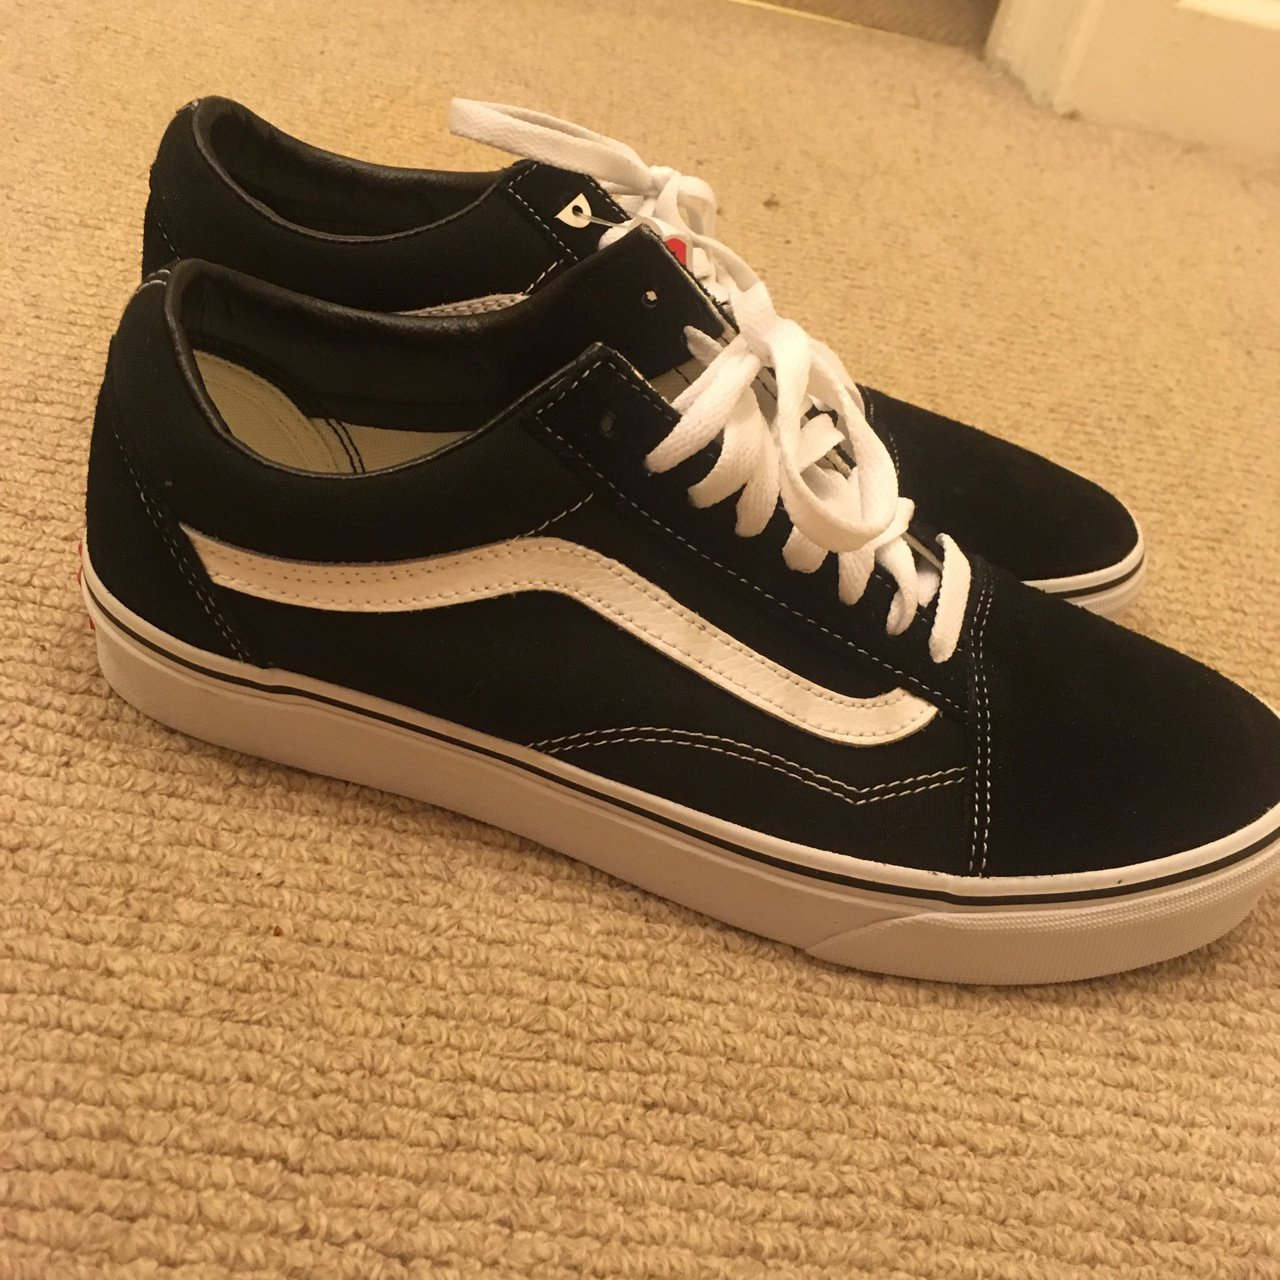 Vans classic old skool trainers Black and white Brand new   - Depop 97e03f522